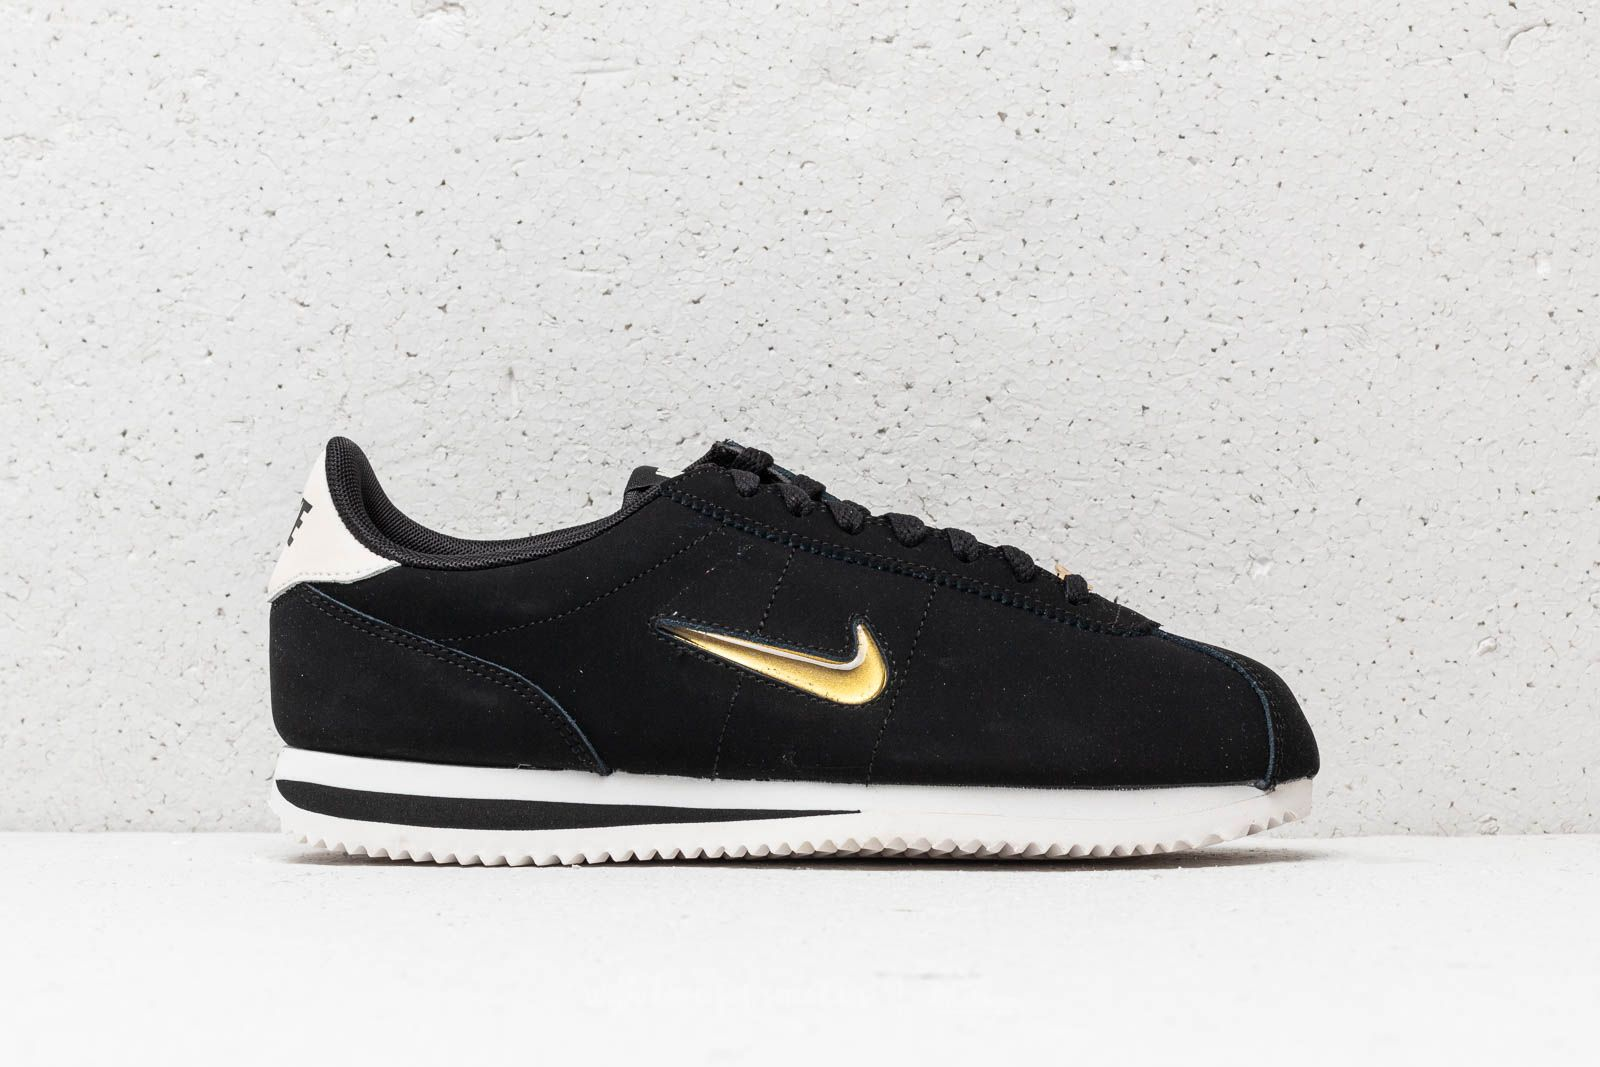 wholesale dealer caf2c b87ec Nike Cortez Basic Jewel ´18 Wmns Black/ Metallic Gold-Phantom at a great